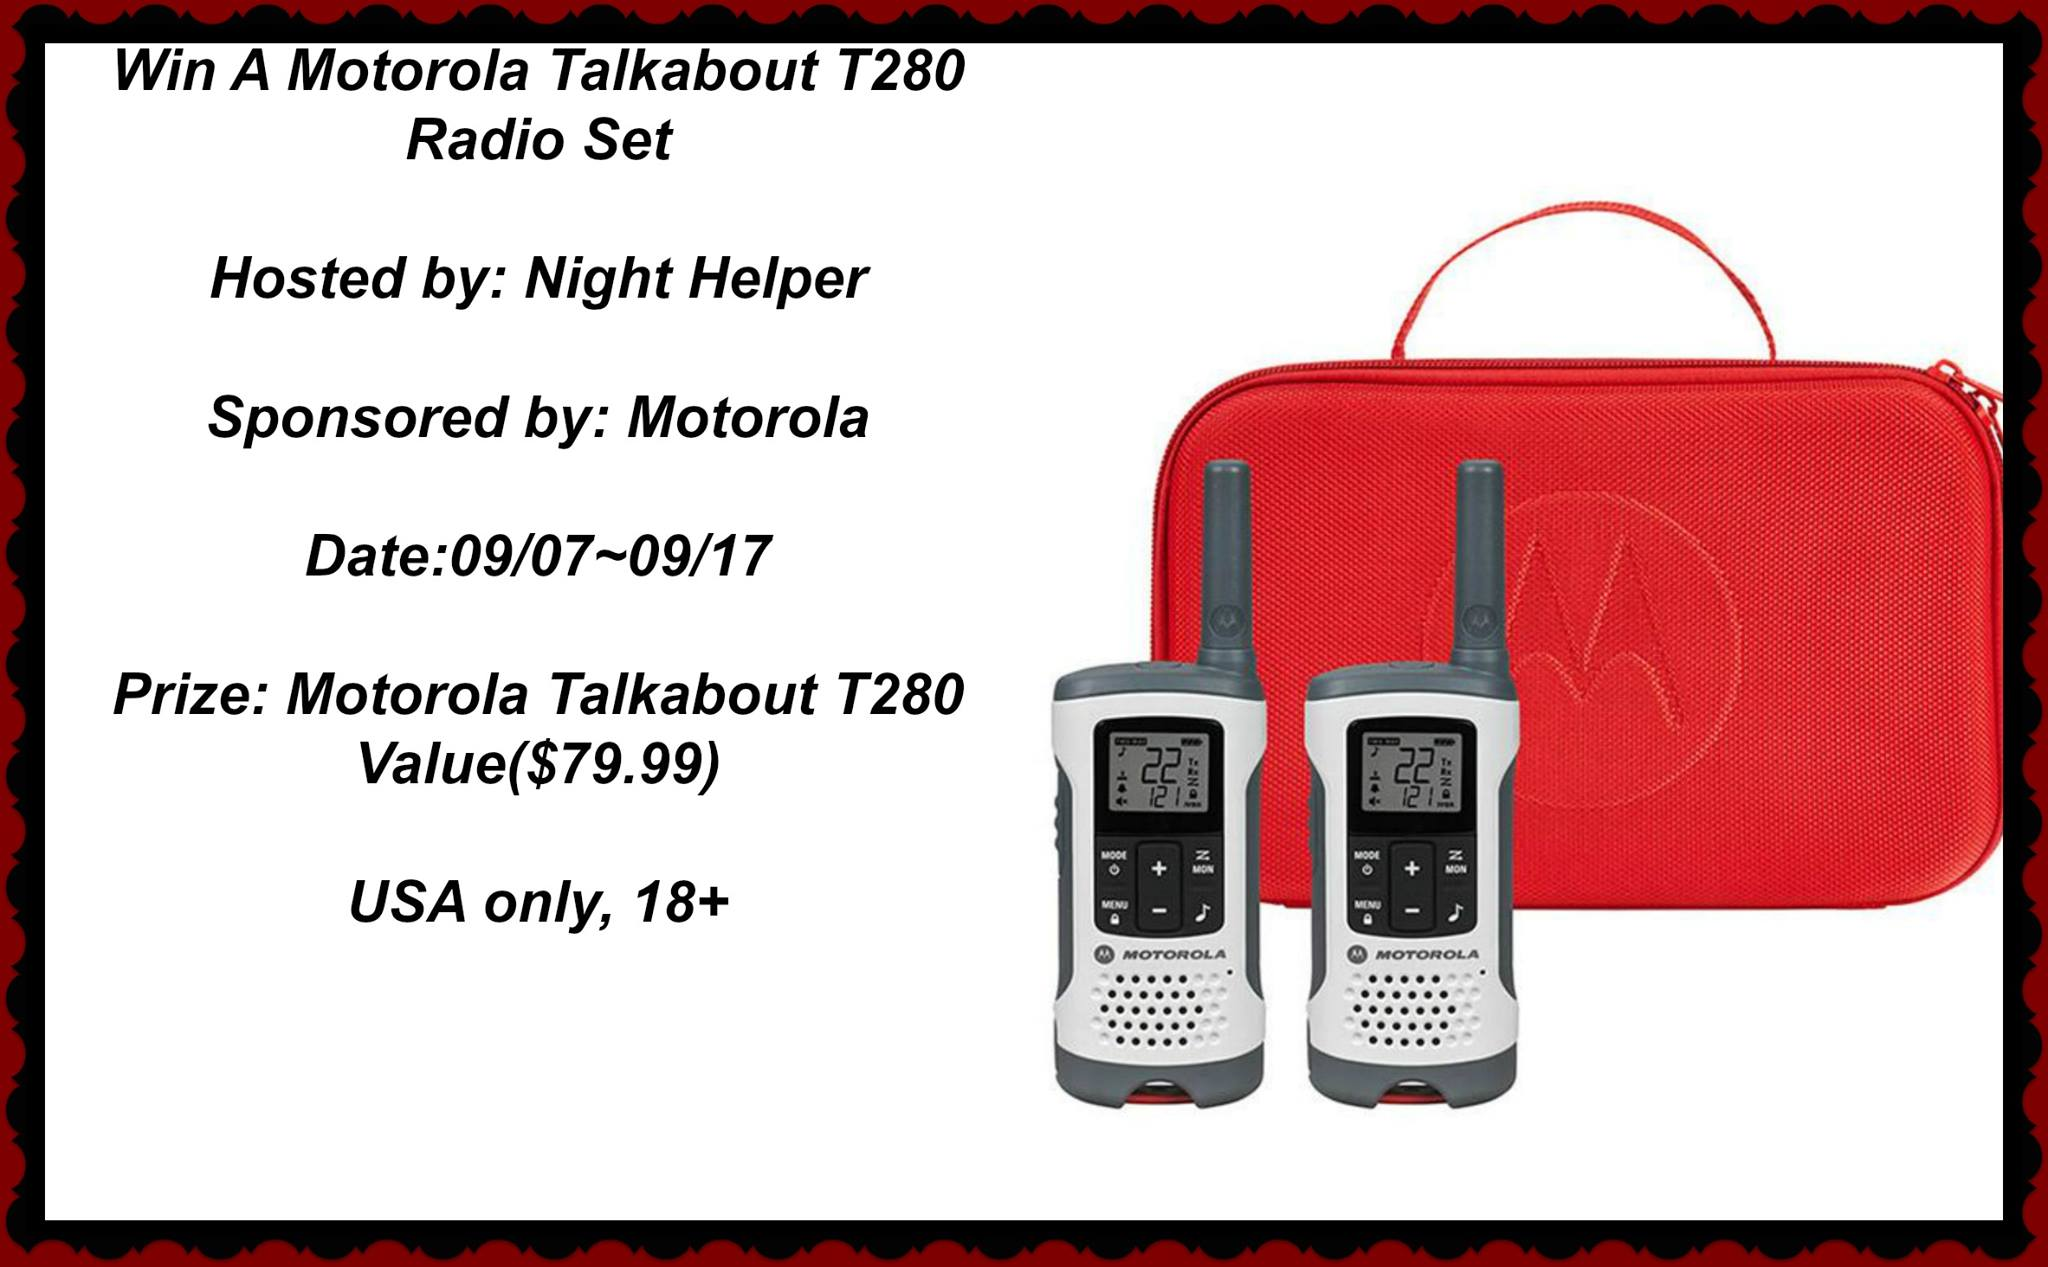 Win a Motorola Talkabout T280 Radio Set #EmergencyPreparednessMonth